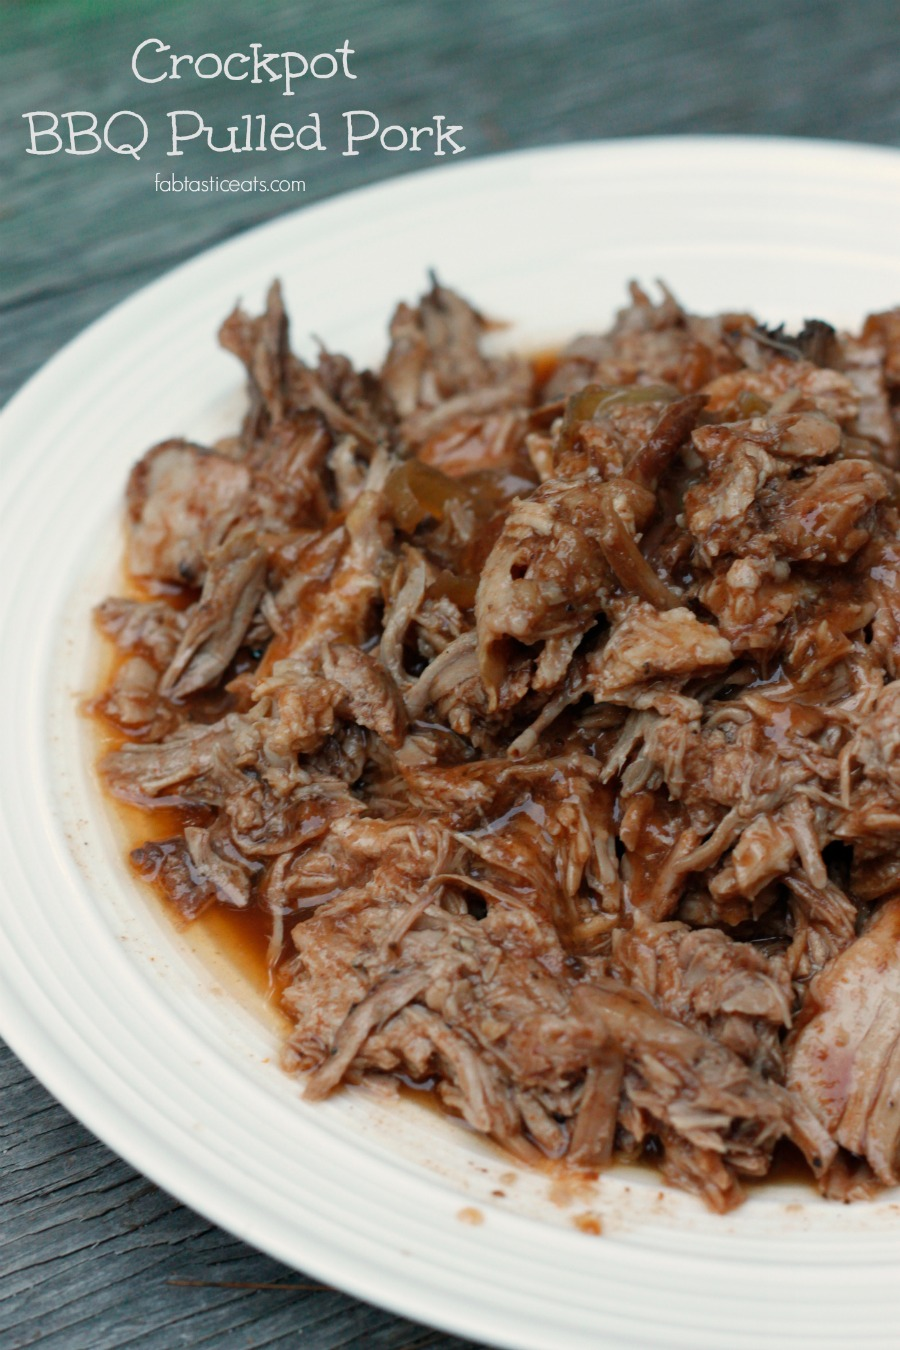 5 Minute Crock-Pot BBQ Pulled Pork